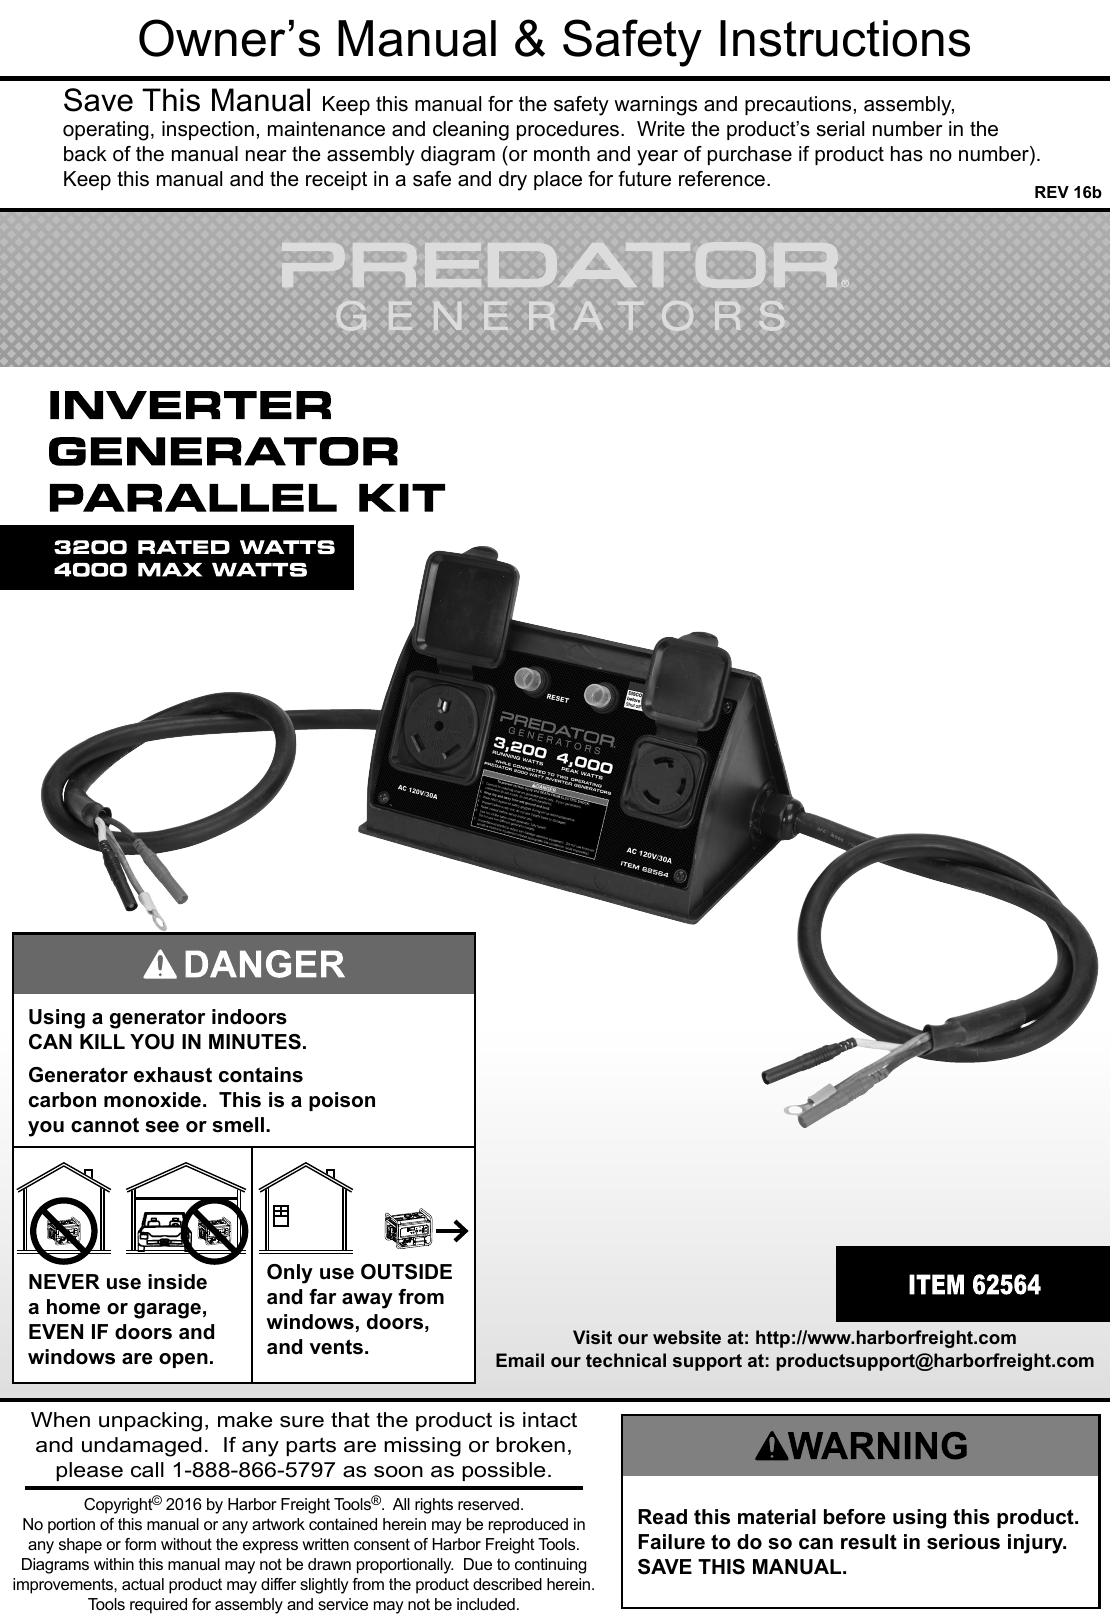 Harbor Freight Watt Generator Wiring Diagram on cabela's 4000 watt generator, harbor freight power generator, honda 4000 watt generator, harbor freight generator head, harbor freight inverter generator, sears 4000 watt generator, home depot 4000 watt generator, harbor freight 3 phase generator,